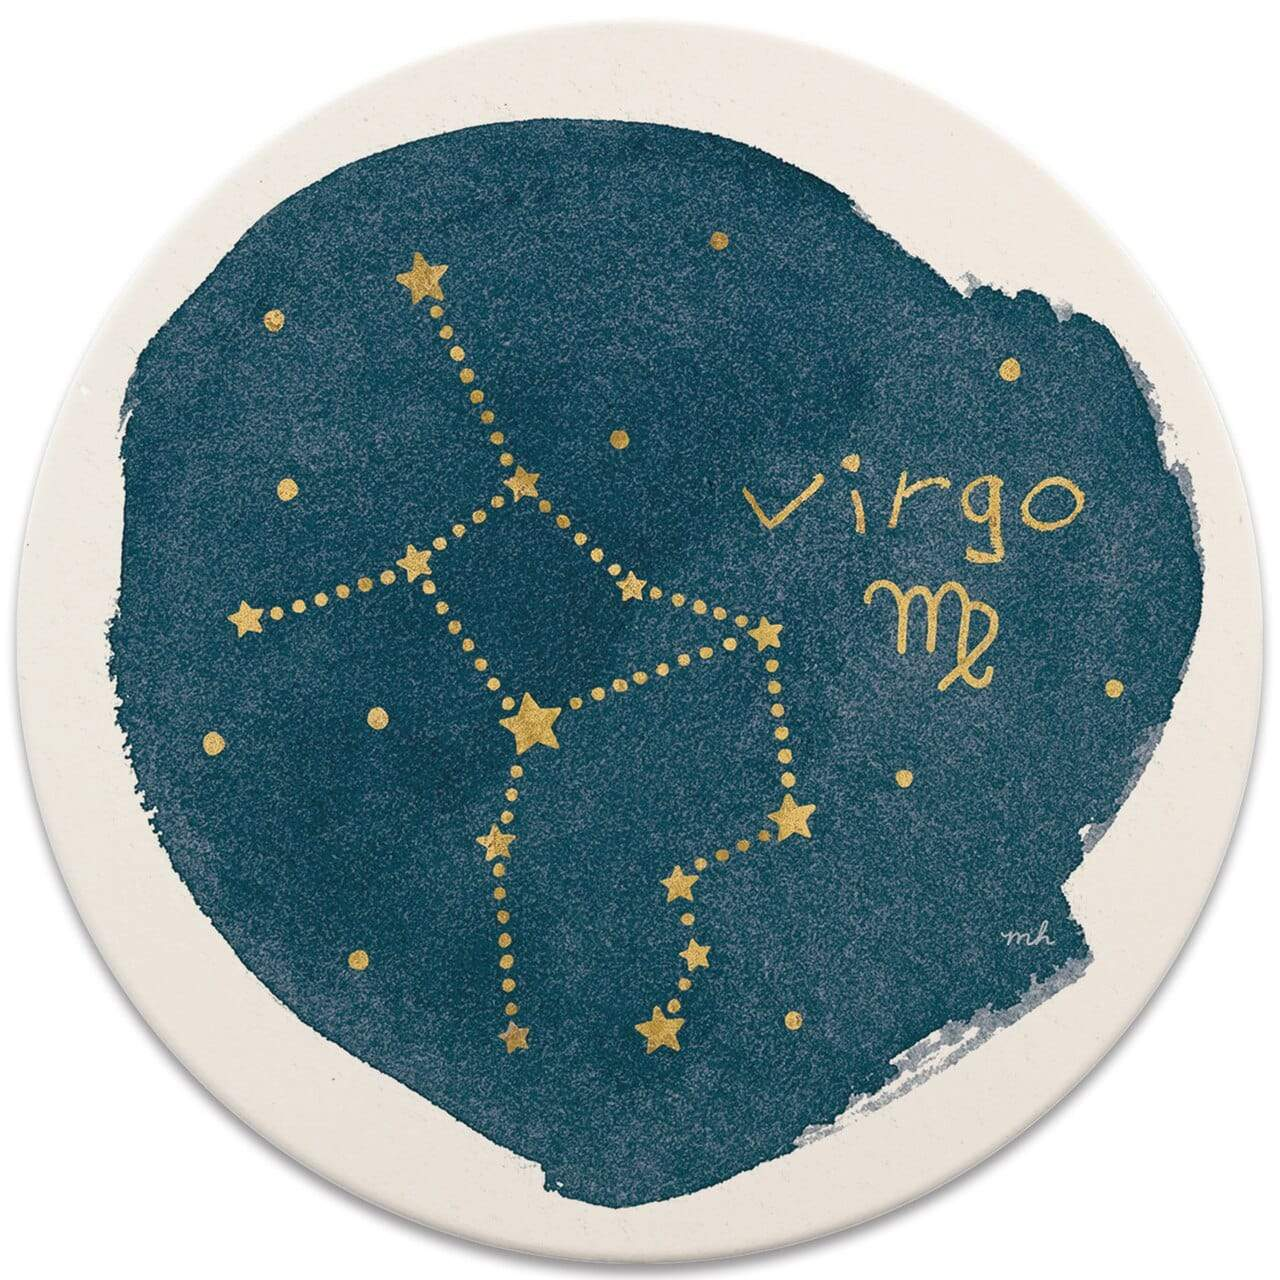 CoasterStone Coasters Virgo Sign Coaster - Set of 4